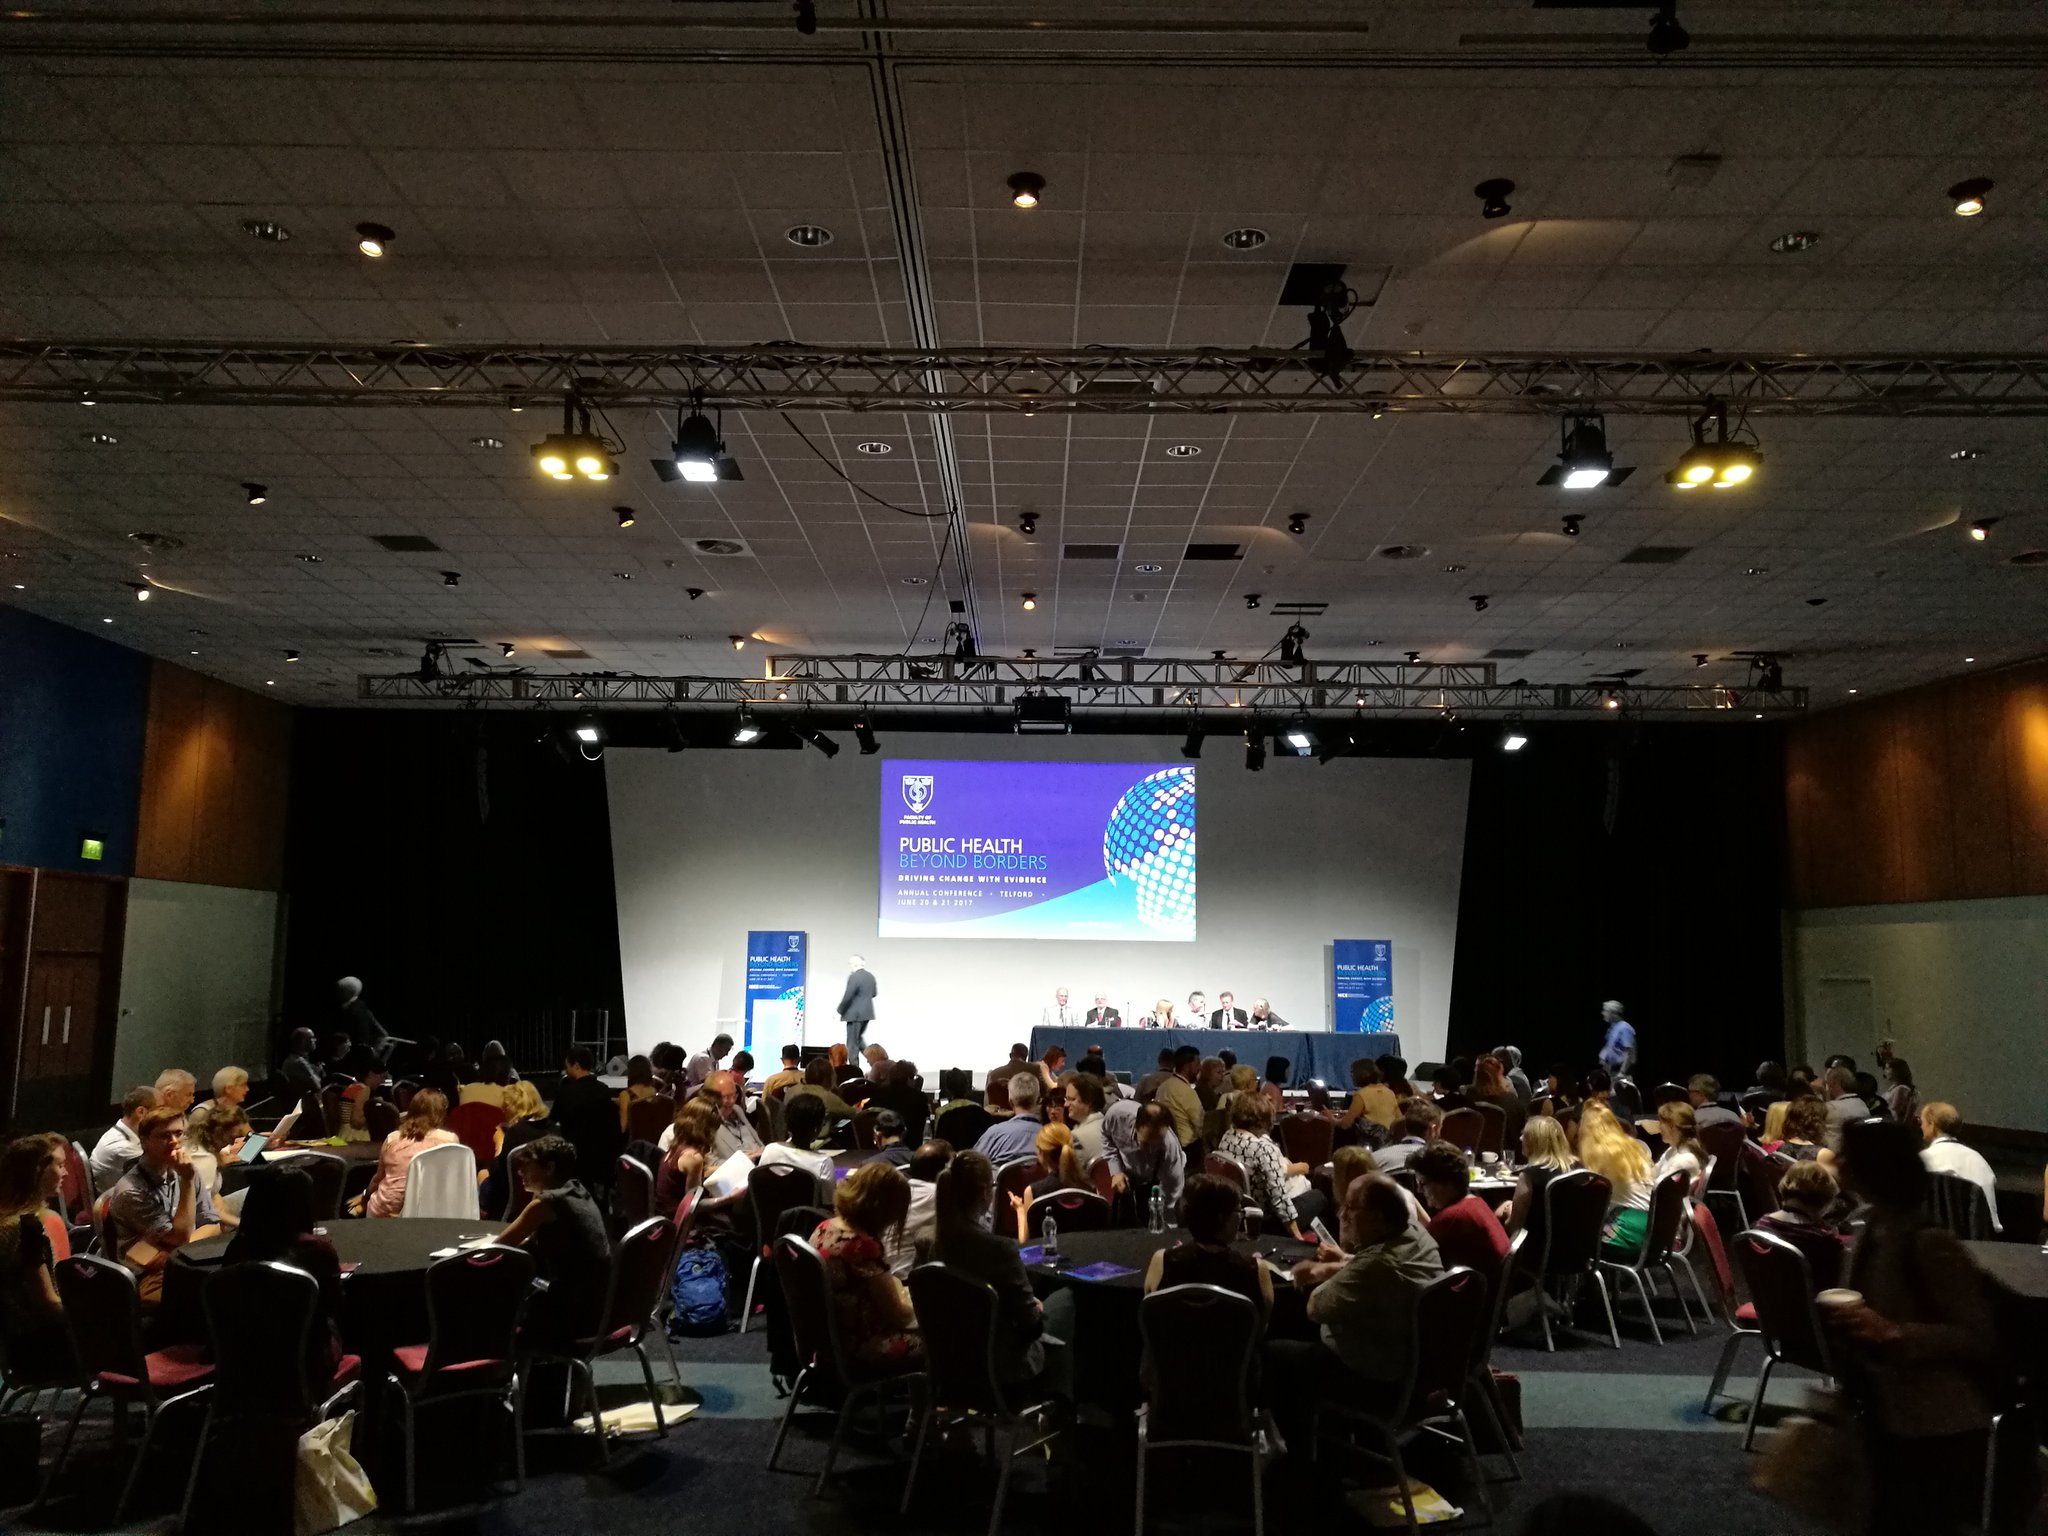 Opening plenary of the Faculty of Public Health annual conference #FPHconf @FPH https://t.co/AMhWjusQQX